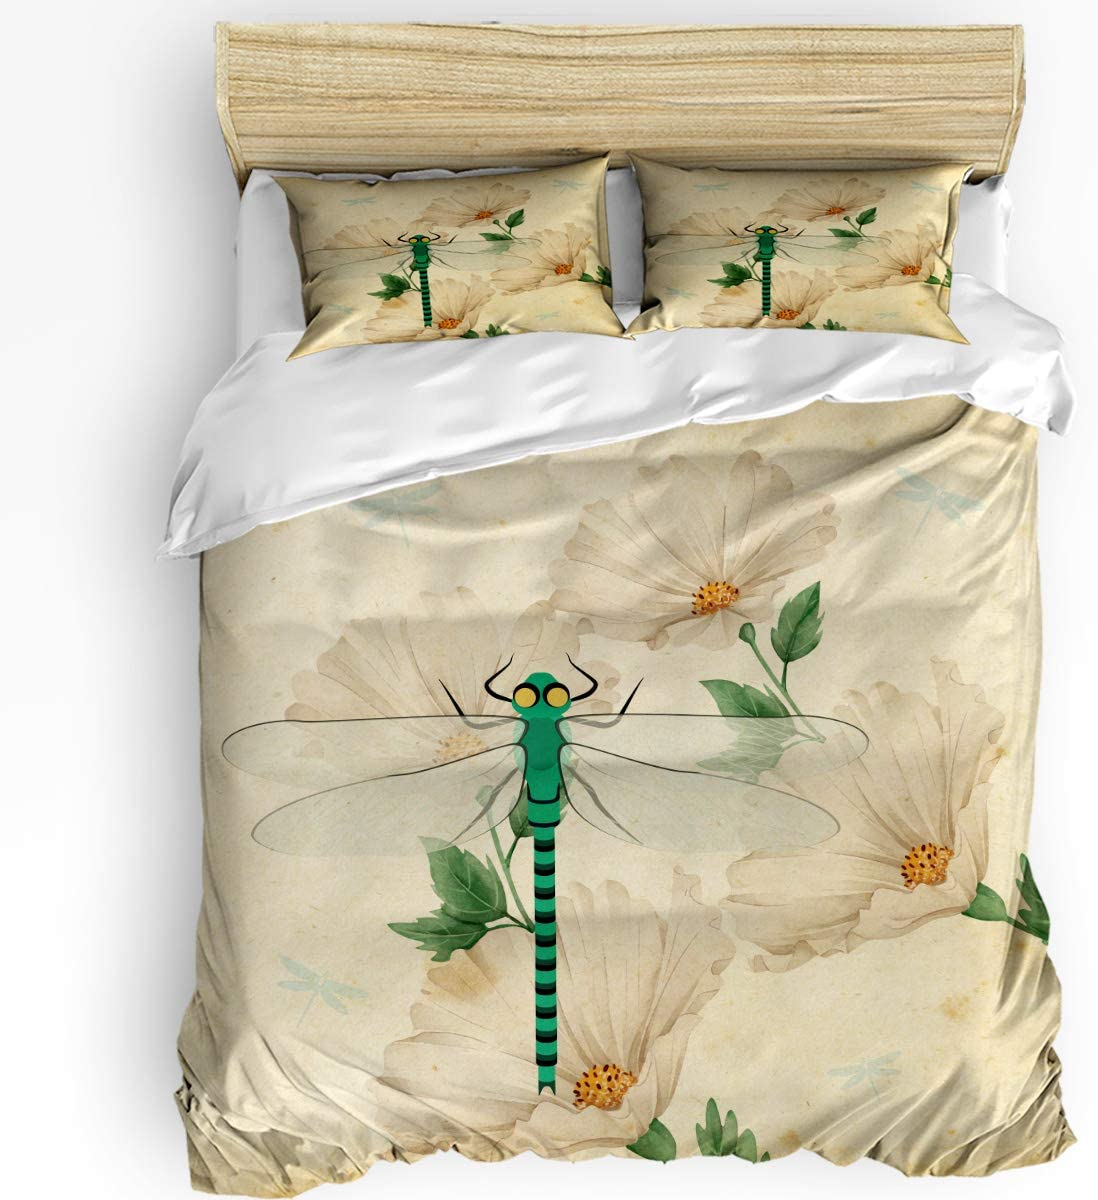 HELLOWINK Duvet Cover Milwaukee Mall 3 Piece In stock Bedding Vintage Set Dra King Size